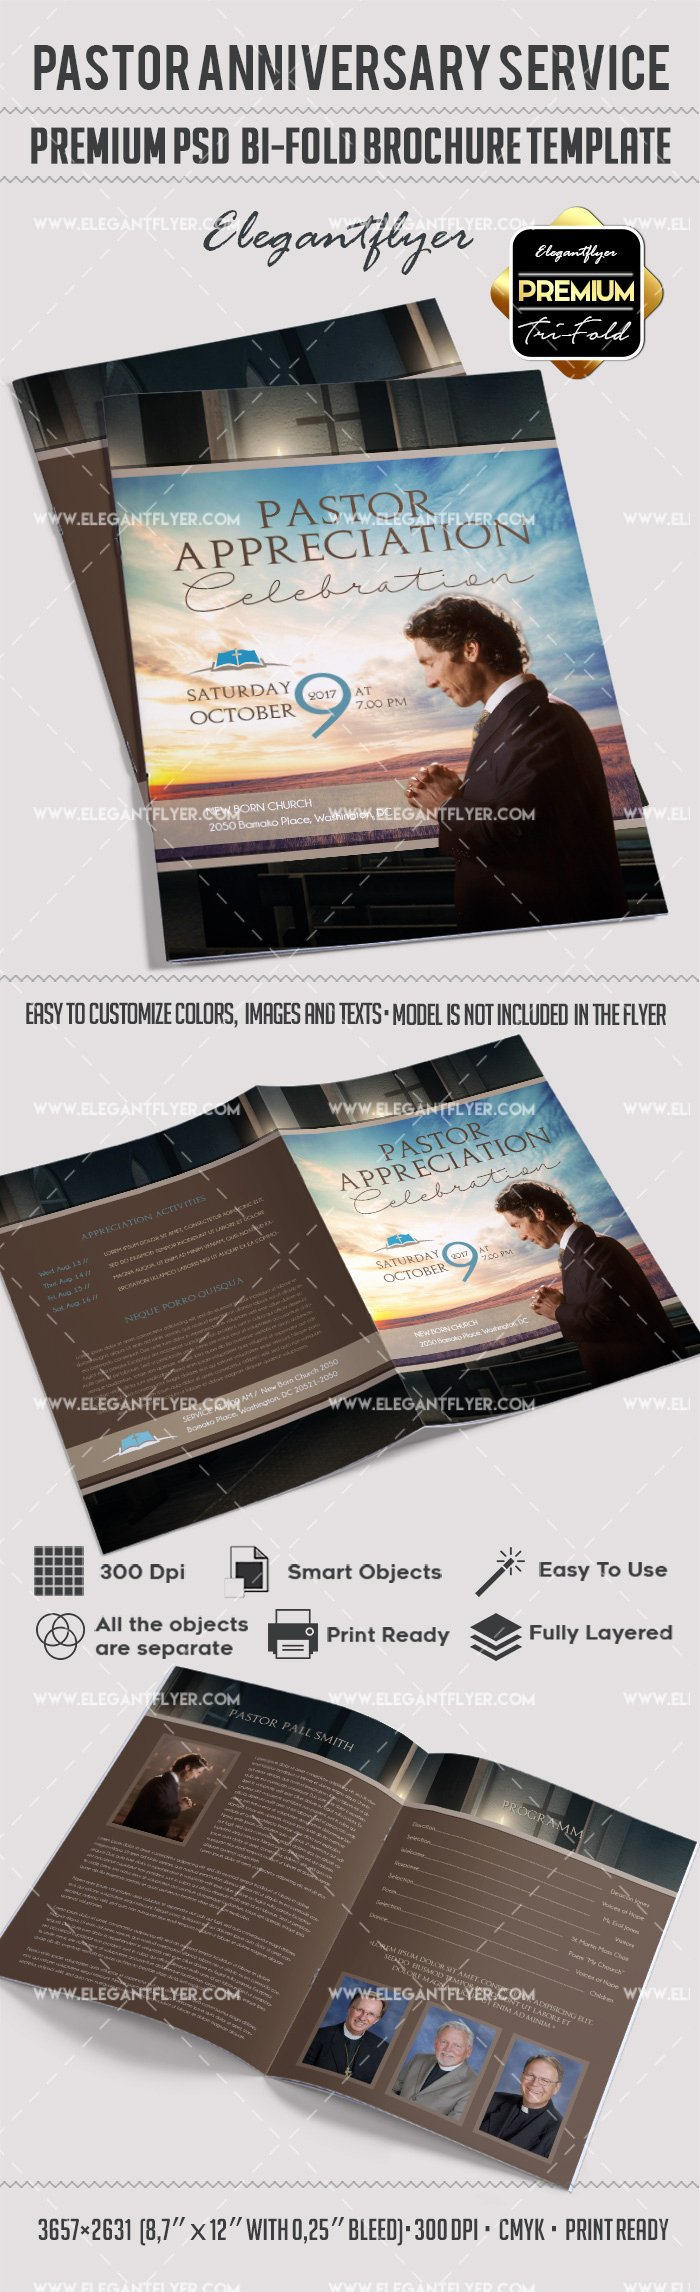 Bi Fold Brochure Template Elegant Pastor Appreciation Day Brochure – by Elegantflyer